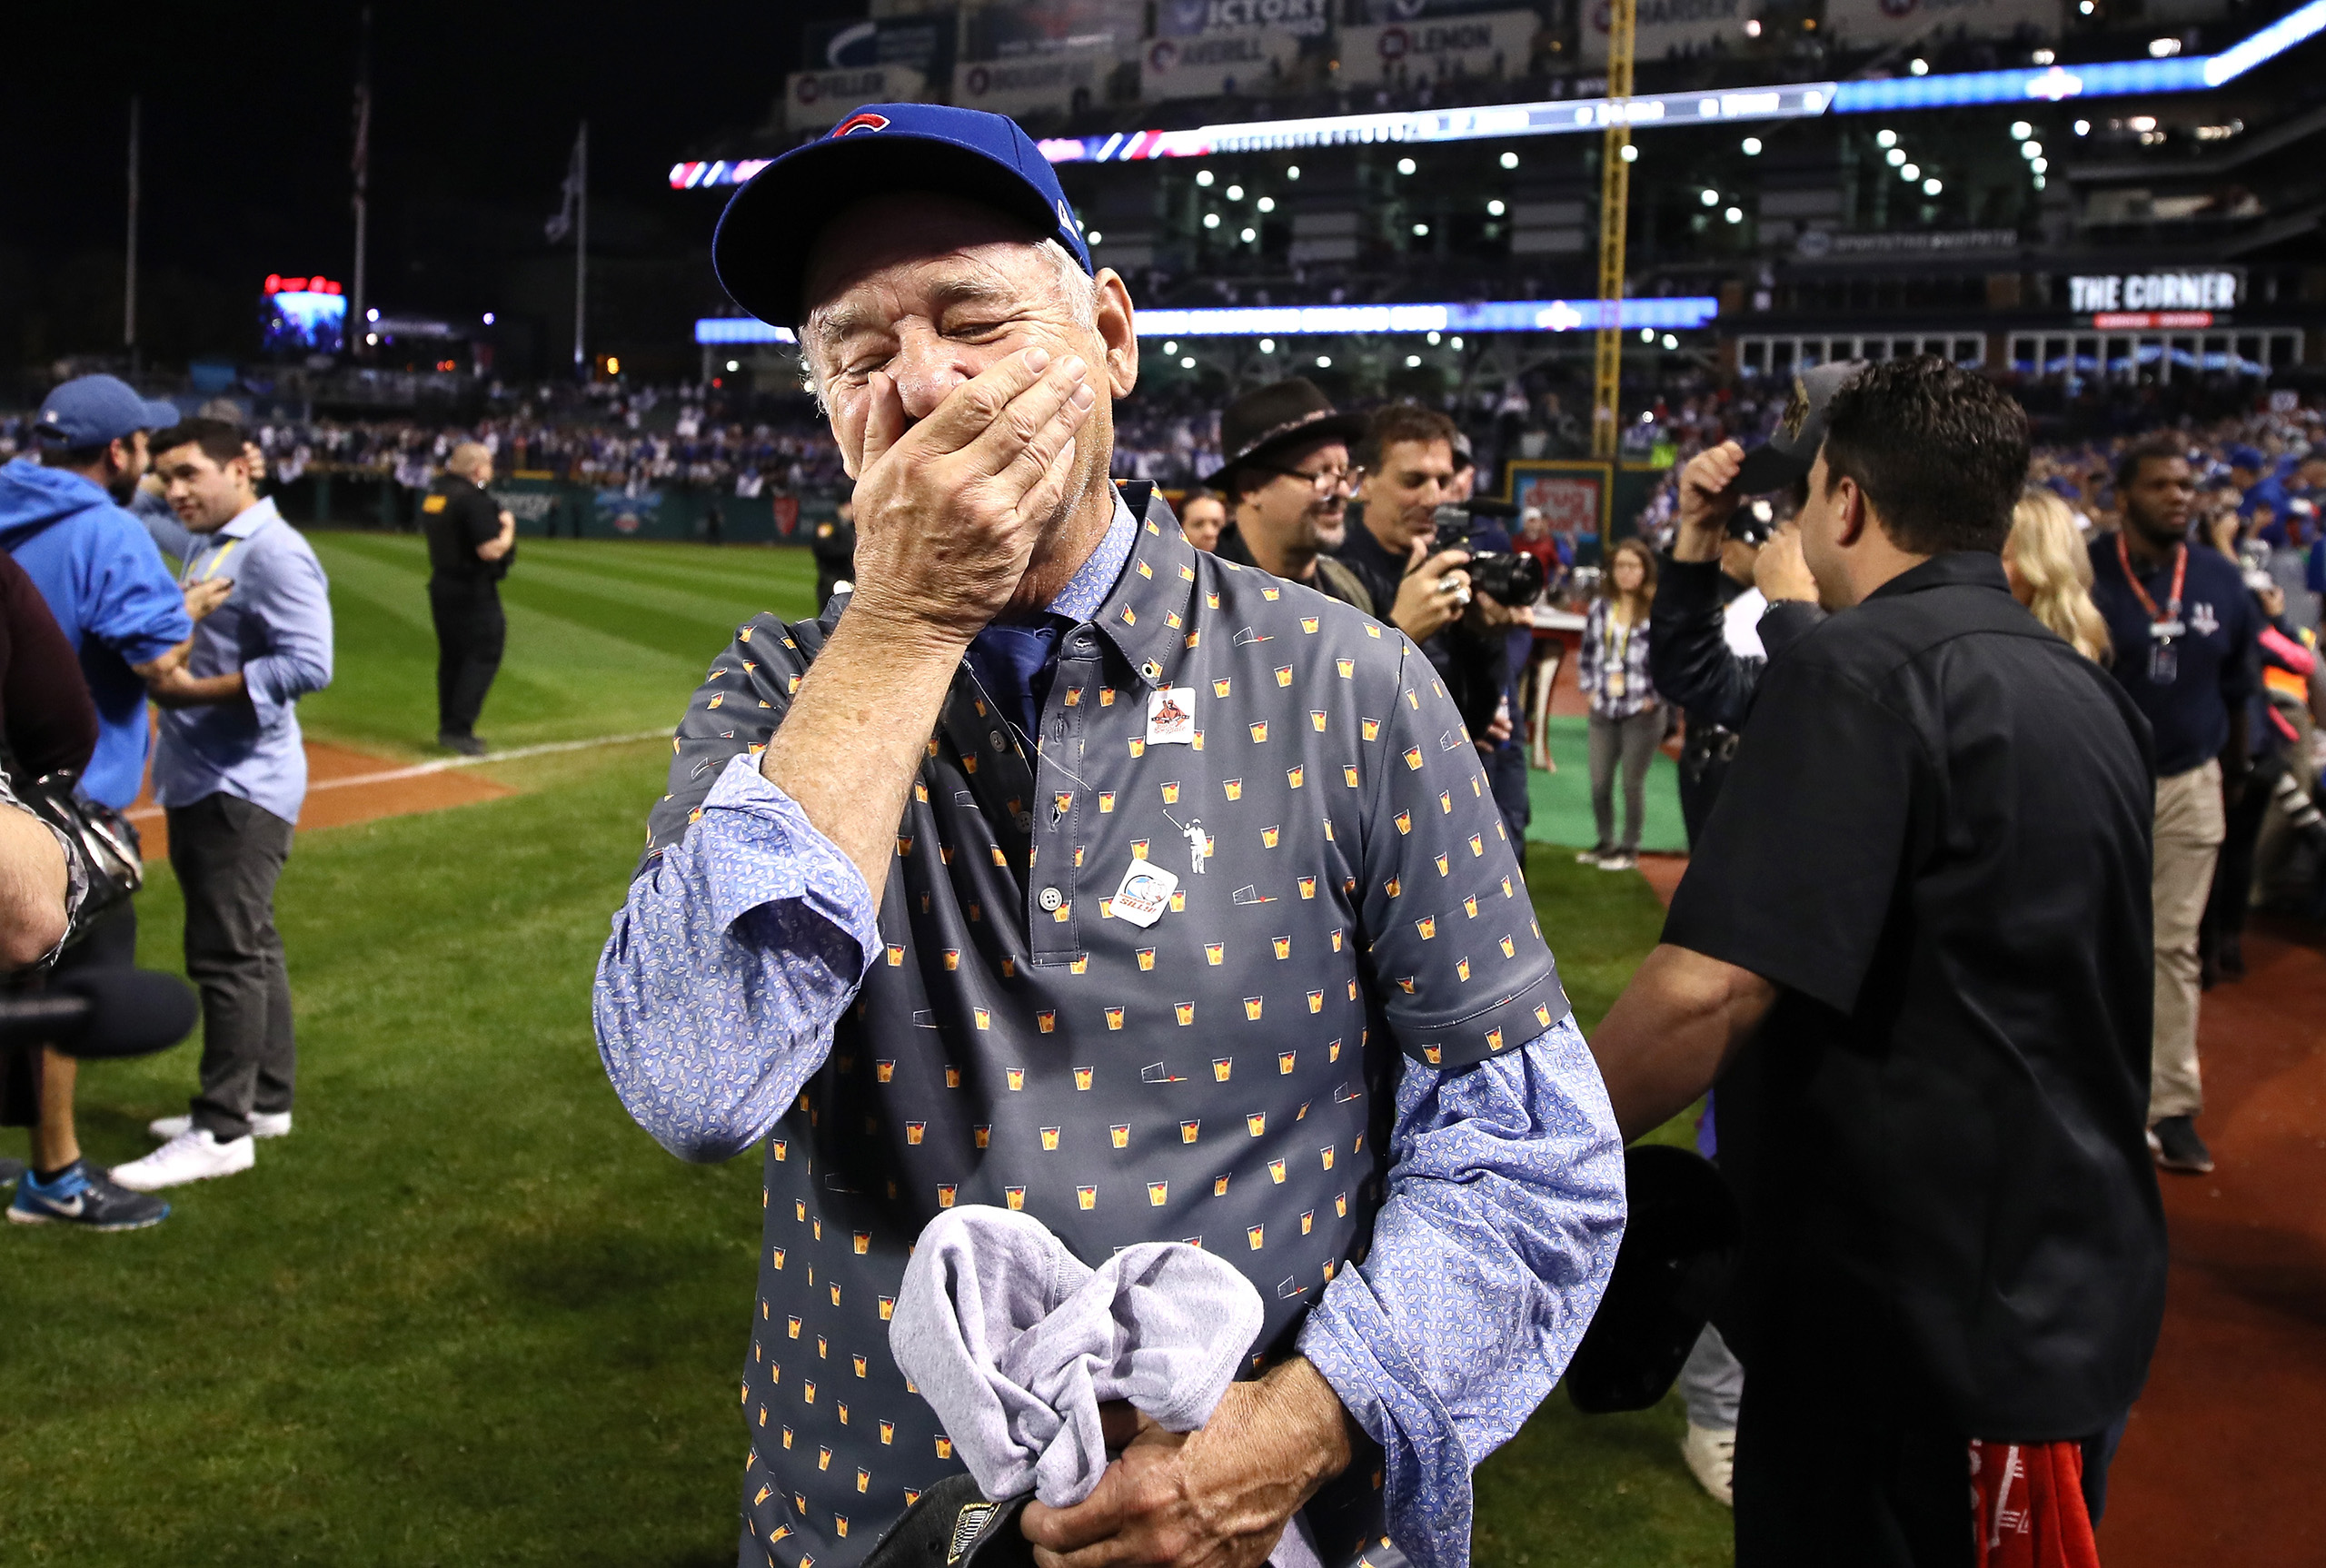 Actor Bill Murray reacts on the field after the Chicago Cubs defeated the Cleveland Indians 8-7 in Game Seven of the 2016 World Series at Progressive Field on Nov. 2, 2016 in Cleveland.